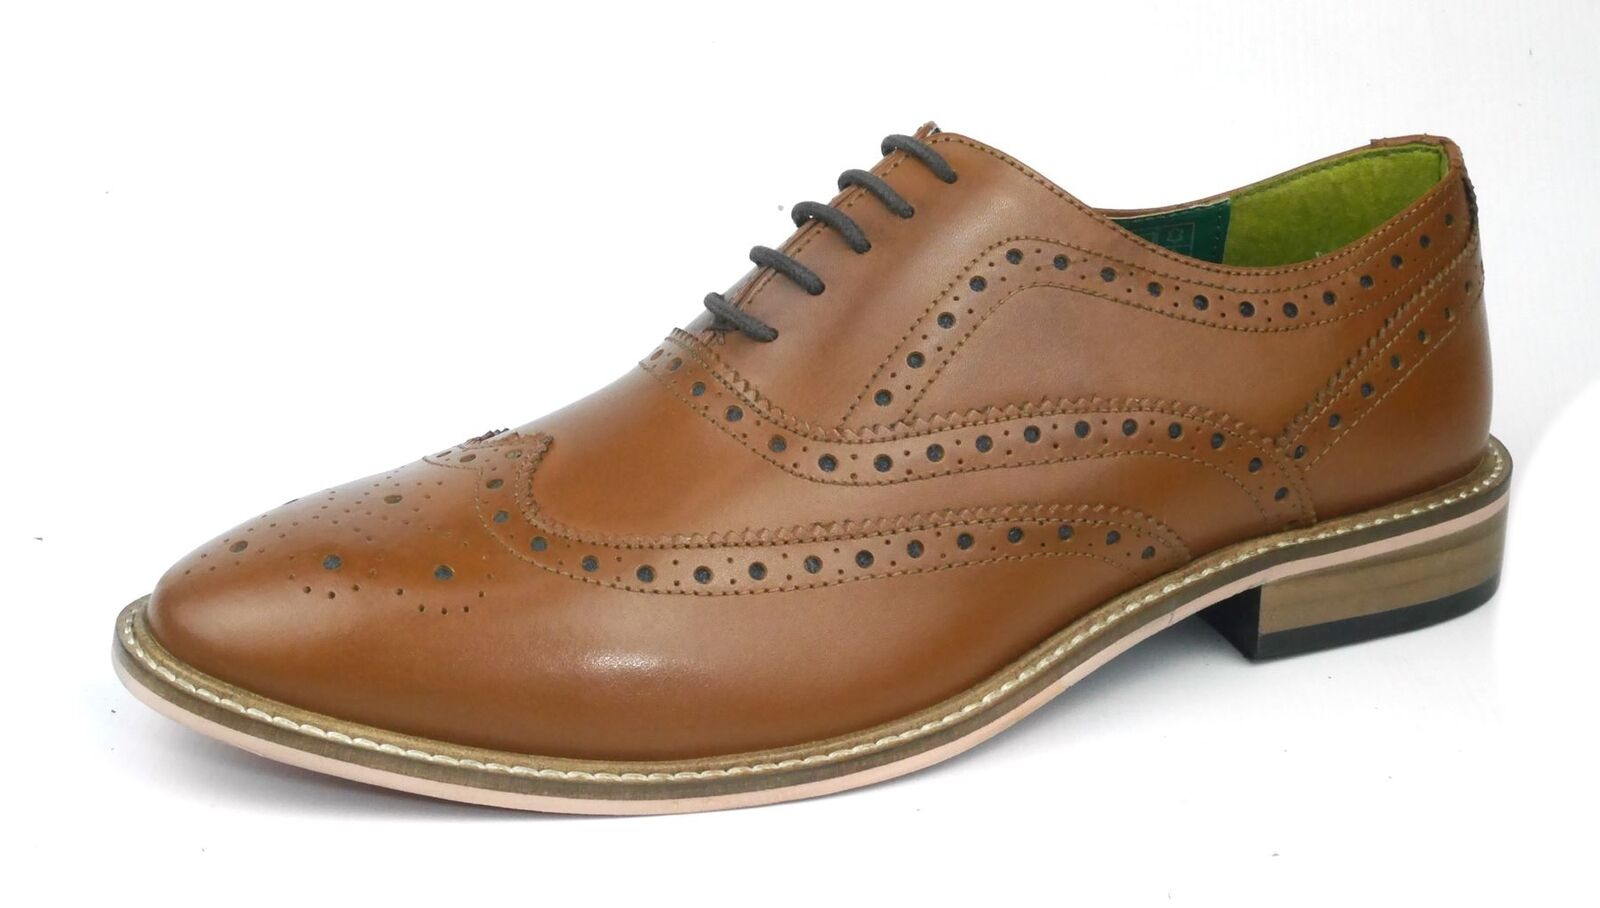 Frank James Zeno Brogues Lace Up Formal Mens Leather shoes Tan Brown Sizes